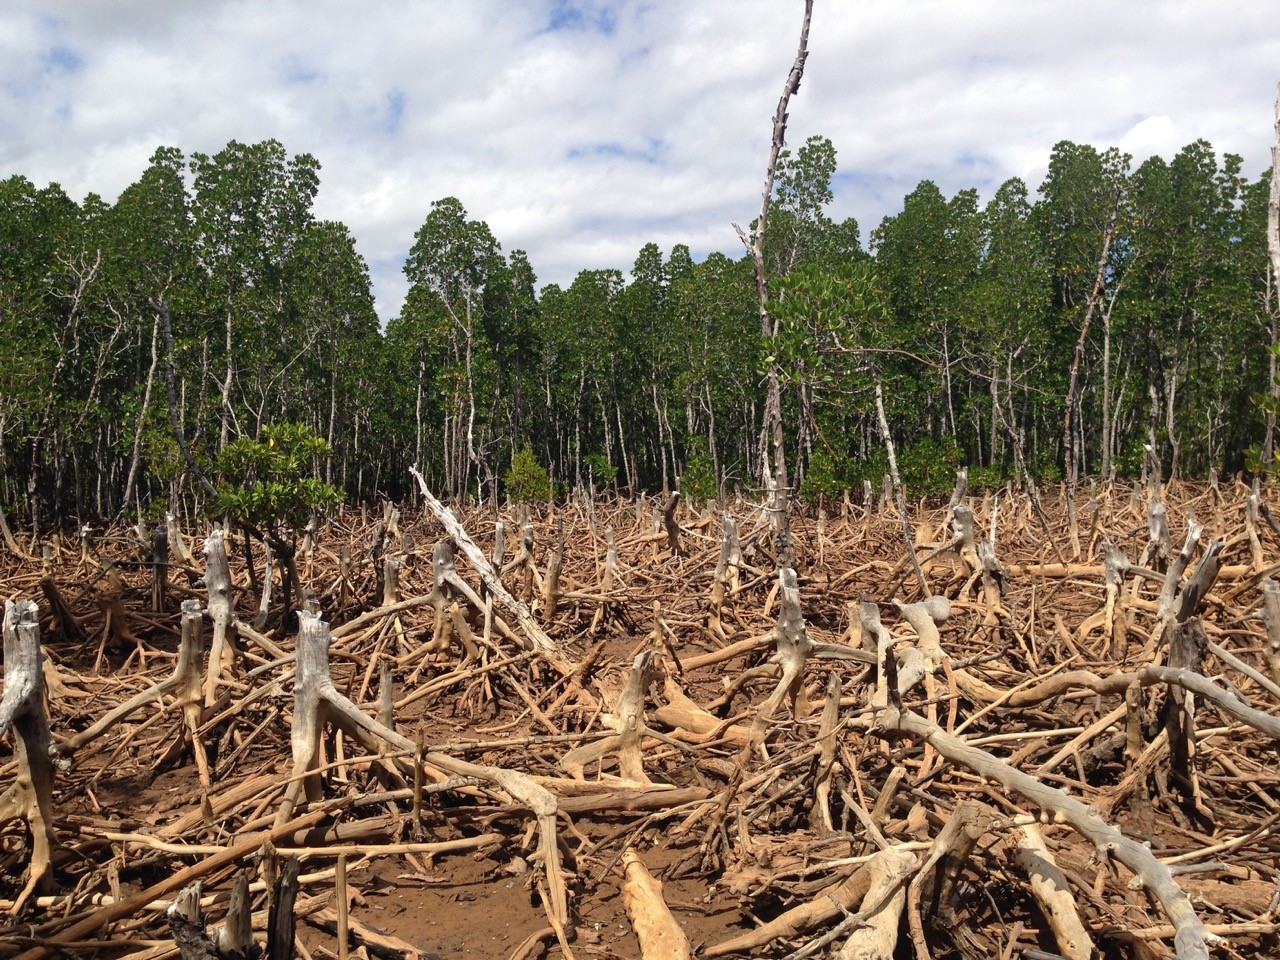 Deforestation is recognised as a big environmental problem